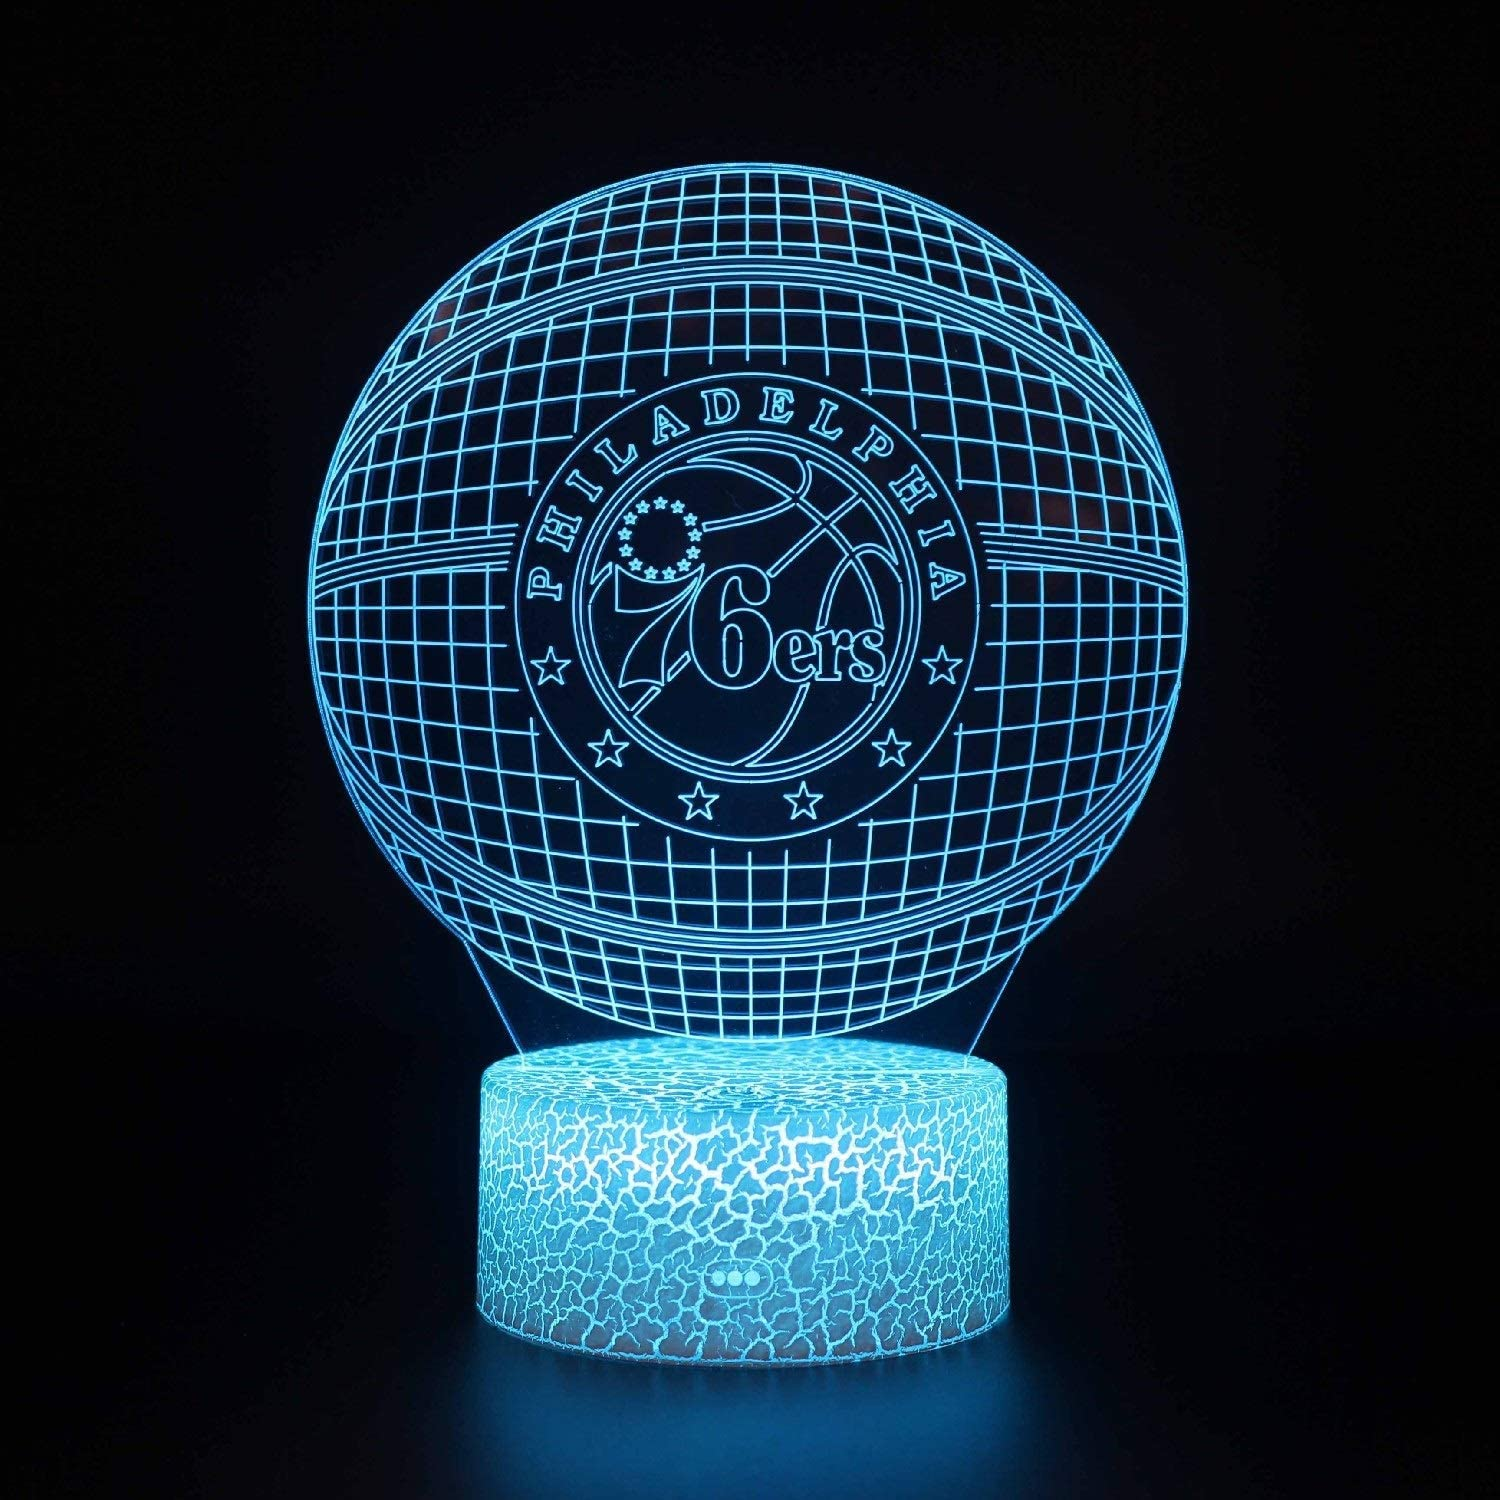 WJXBoos 3D Basketball Night Light Backboard Illusion LED Lamp for Kids 'Room Home Xmas Birthday Gifts for Boy Man Friends Smart Touch 16 Changer de Couleur (Couleur: C) 1